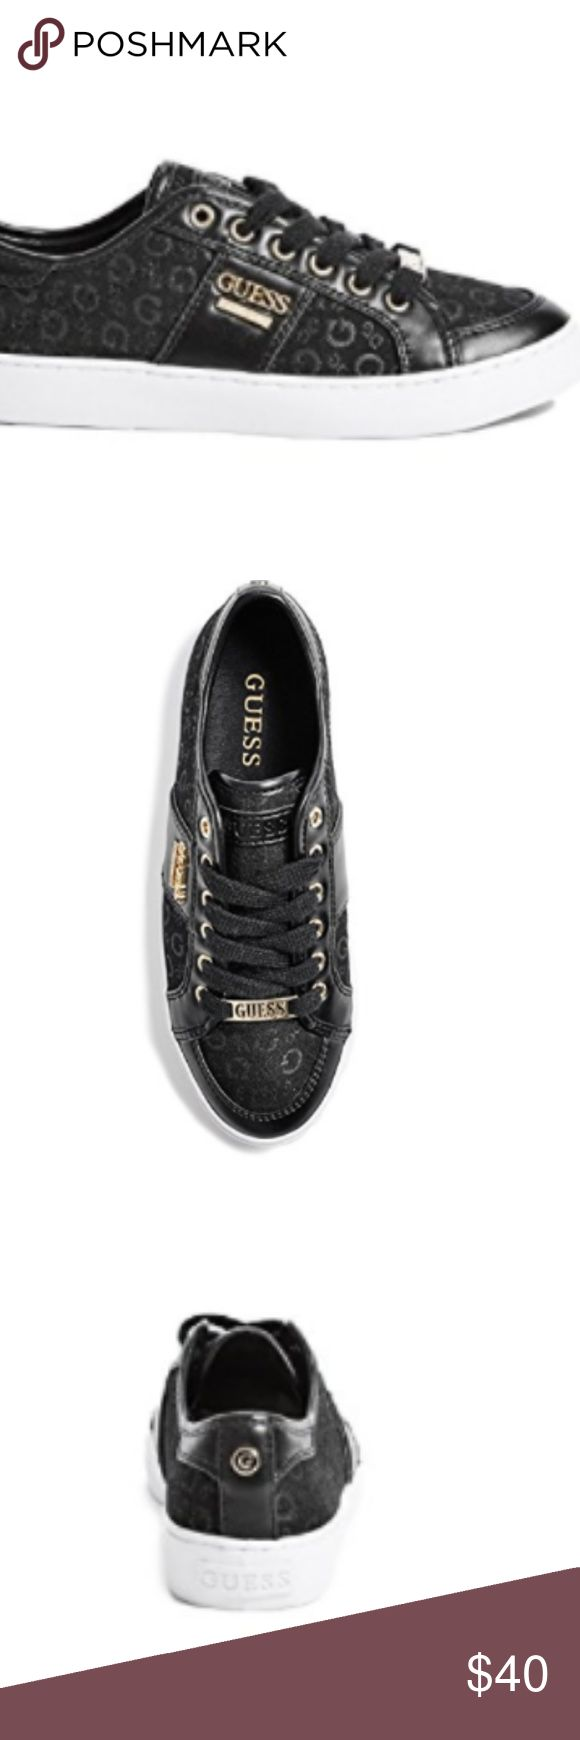 New in box GUESS Women's BLUME LOW-TOP SNEAKERS New in box guess BLUME LOW-TOP SNEAKERS, Logo-Embossed. Size 8. Price is firm at $31 Guess Shoes Sneakers